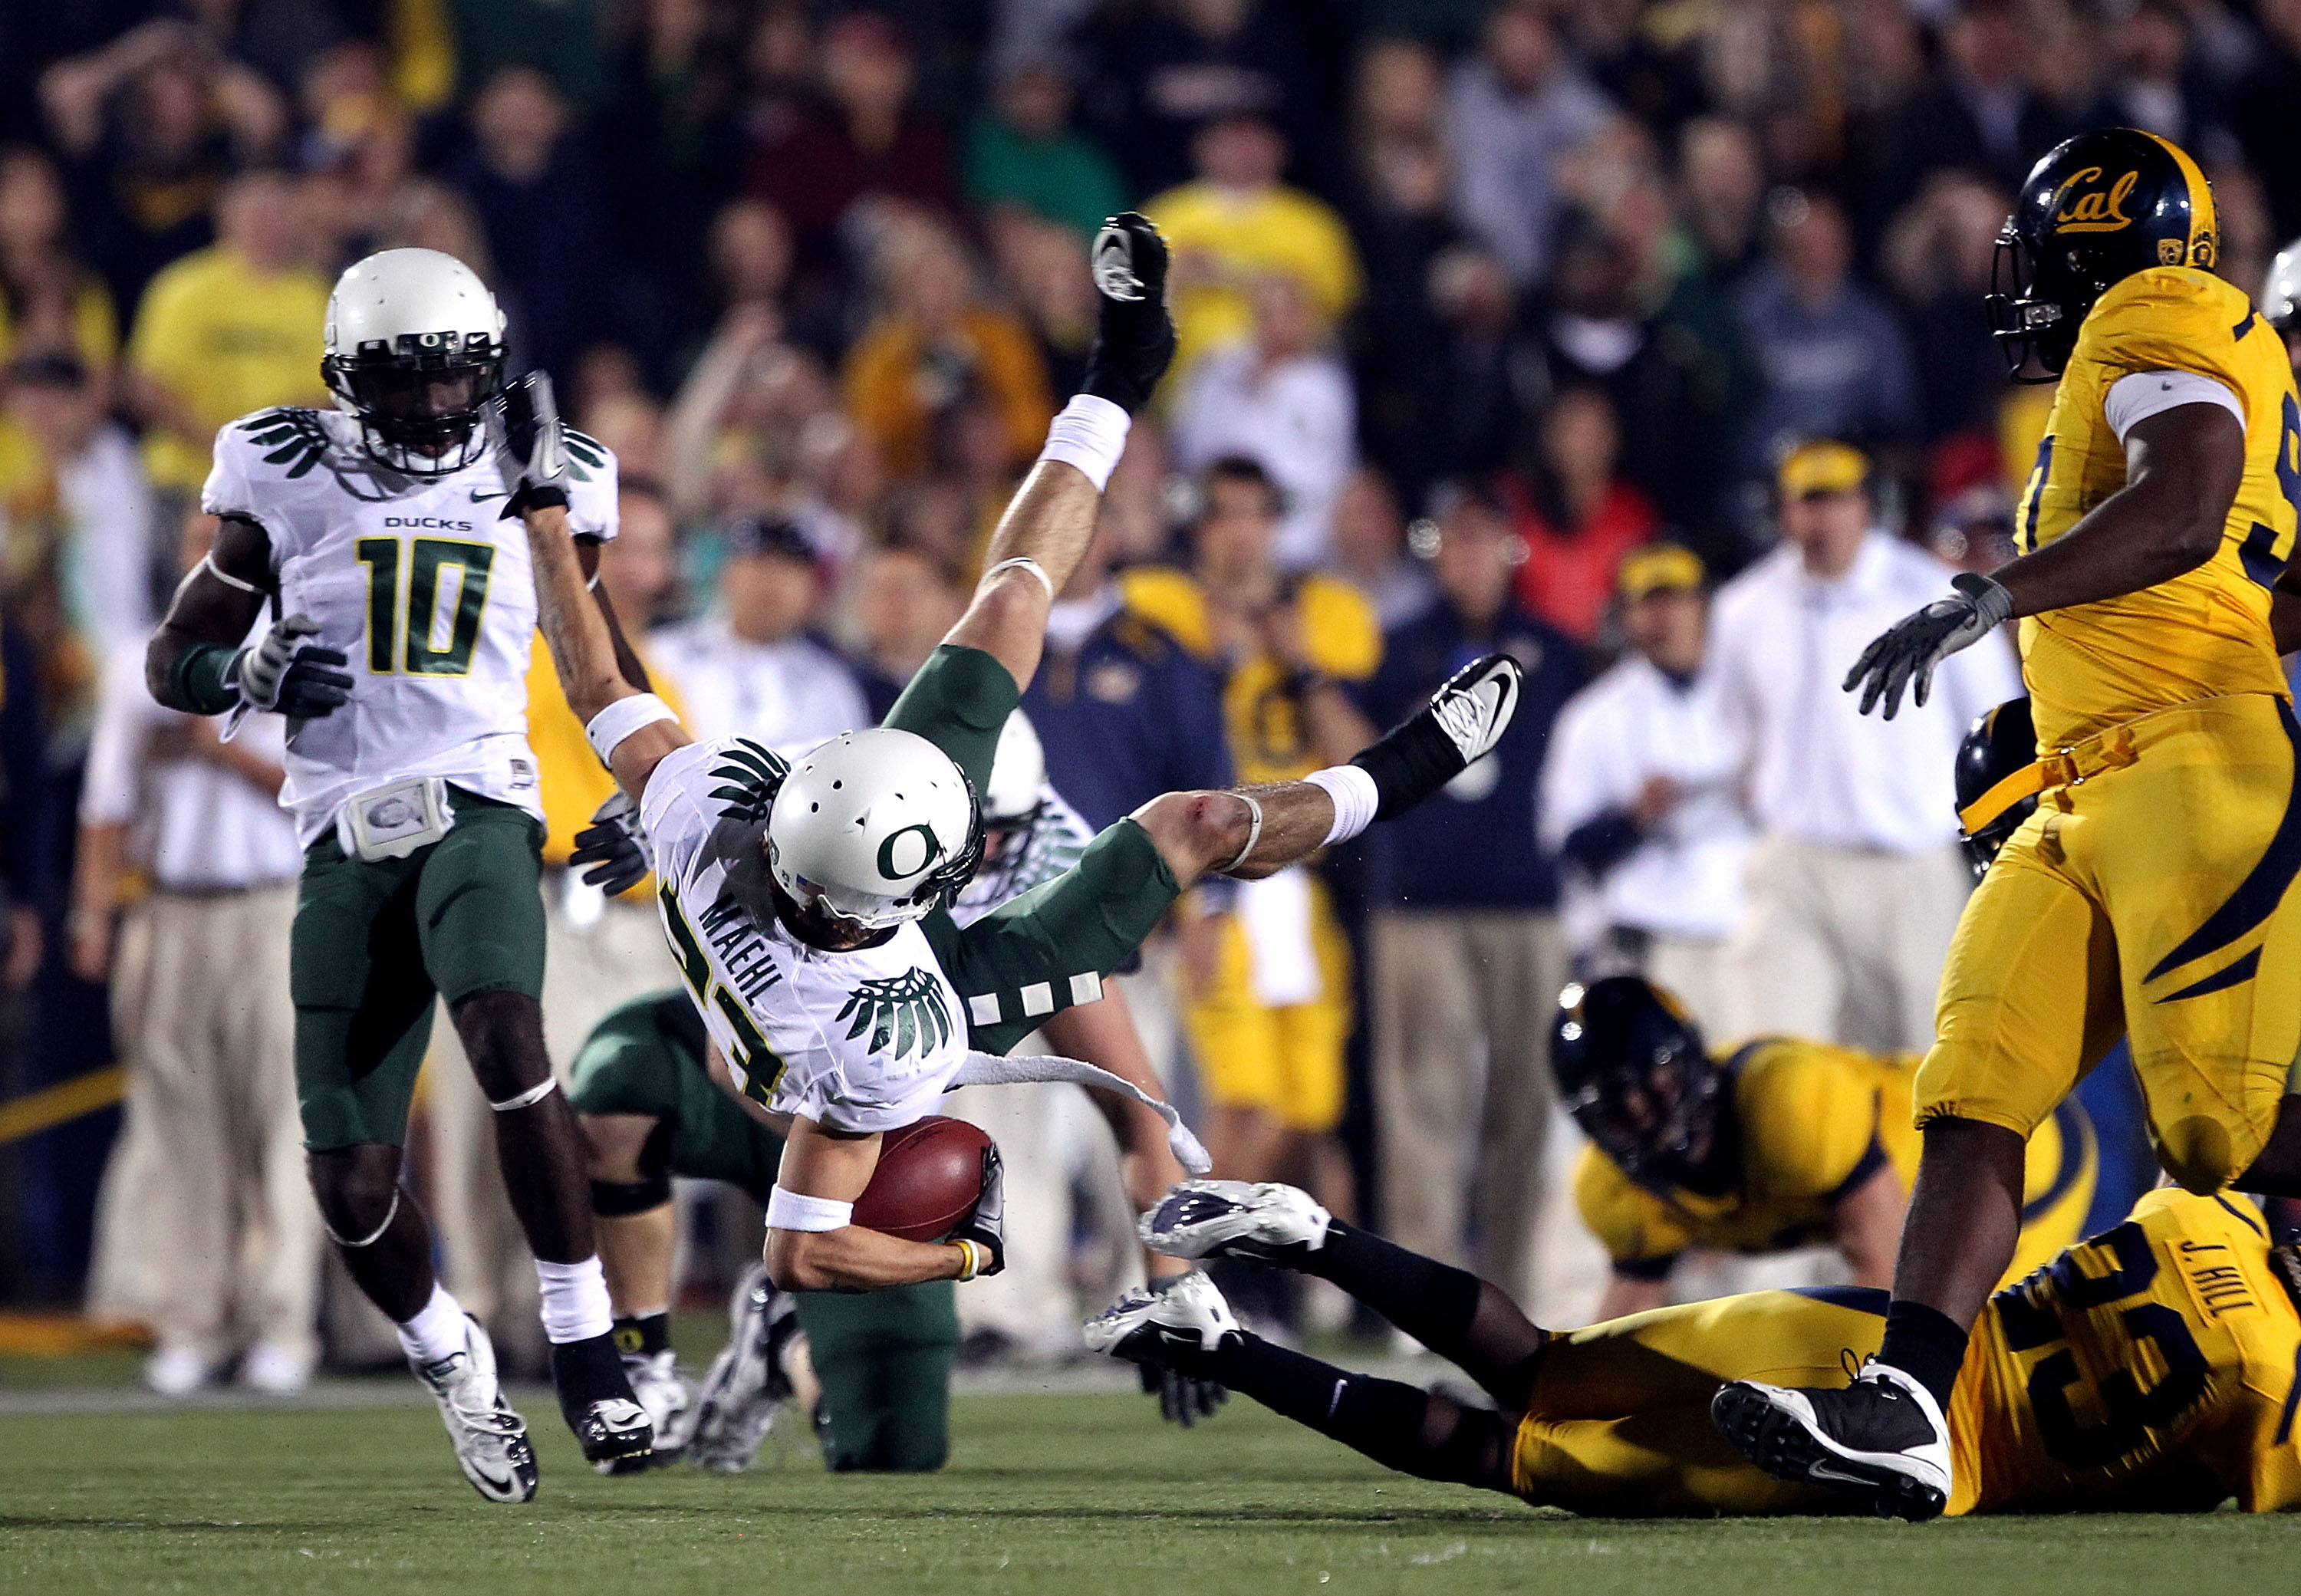 BERKELEY, CA - NOVEMBER 13:  Jeff Maehl #23 of the Oregon Ducks flies through the air after being hit by the California Golden Bears  at California Memorial Stadium on November 13, 2010 in Berkeley, California.  (Photo by Ezra Shaw/Getty Images)